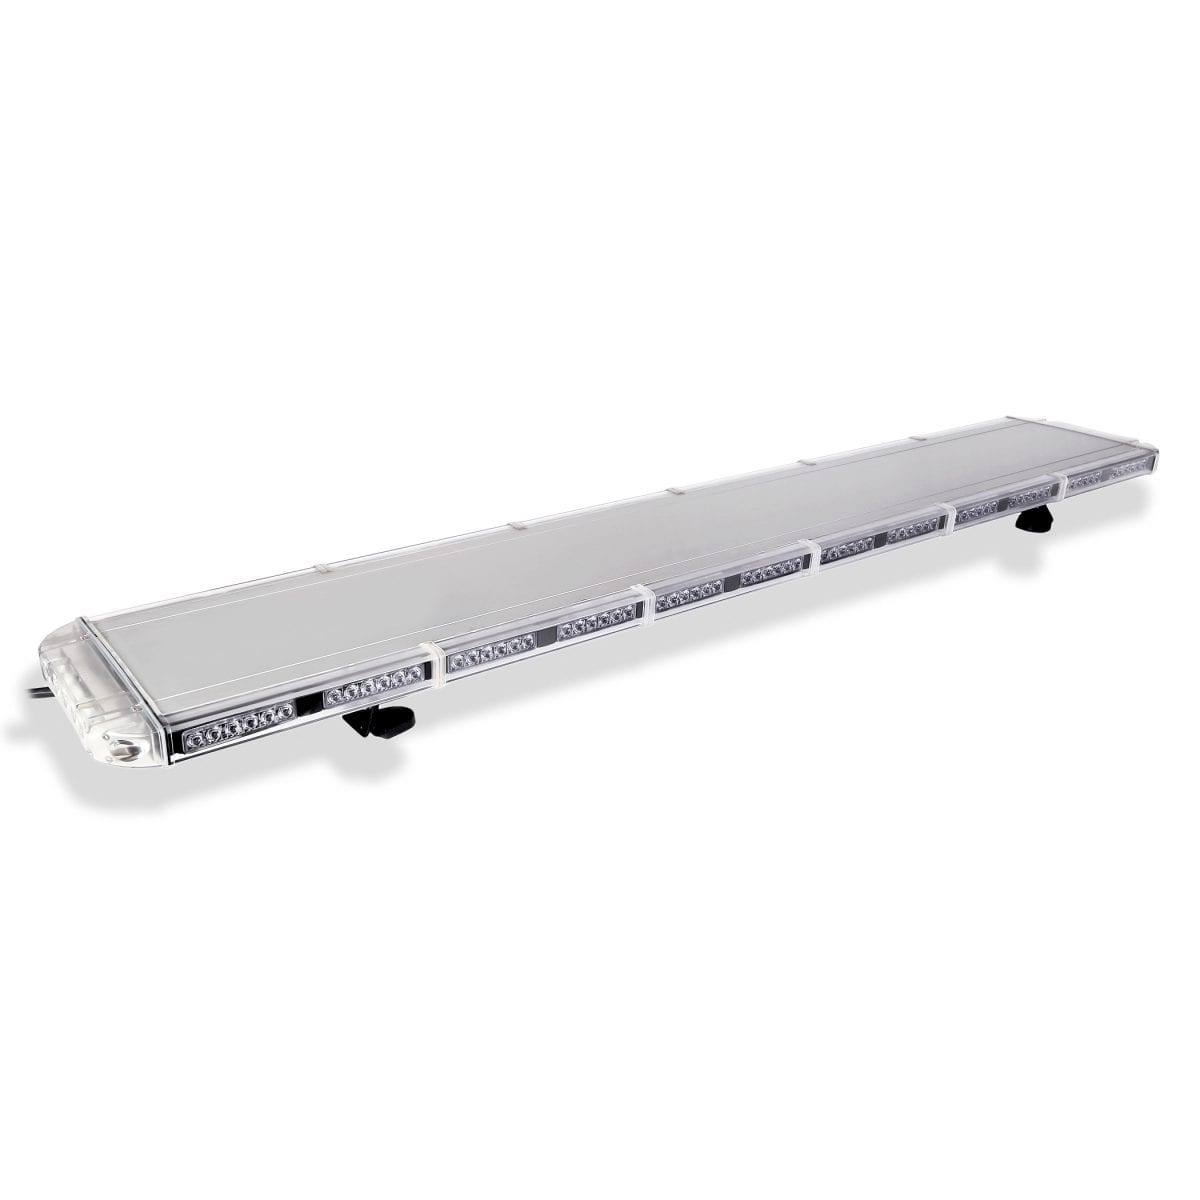 Predator Emergency 3 watt TIR LED Light Bar 63 in Tow Truck light bar STOP &TURN FUNCTION